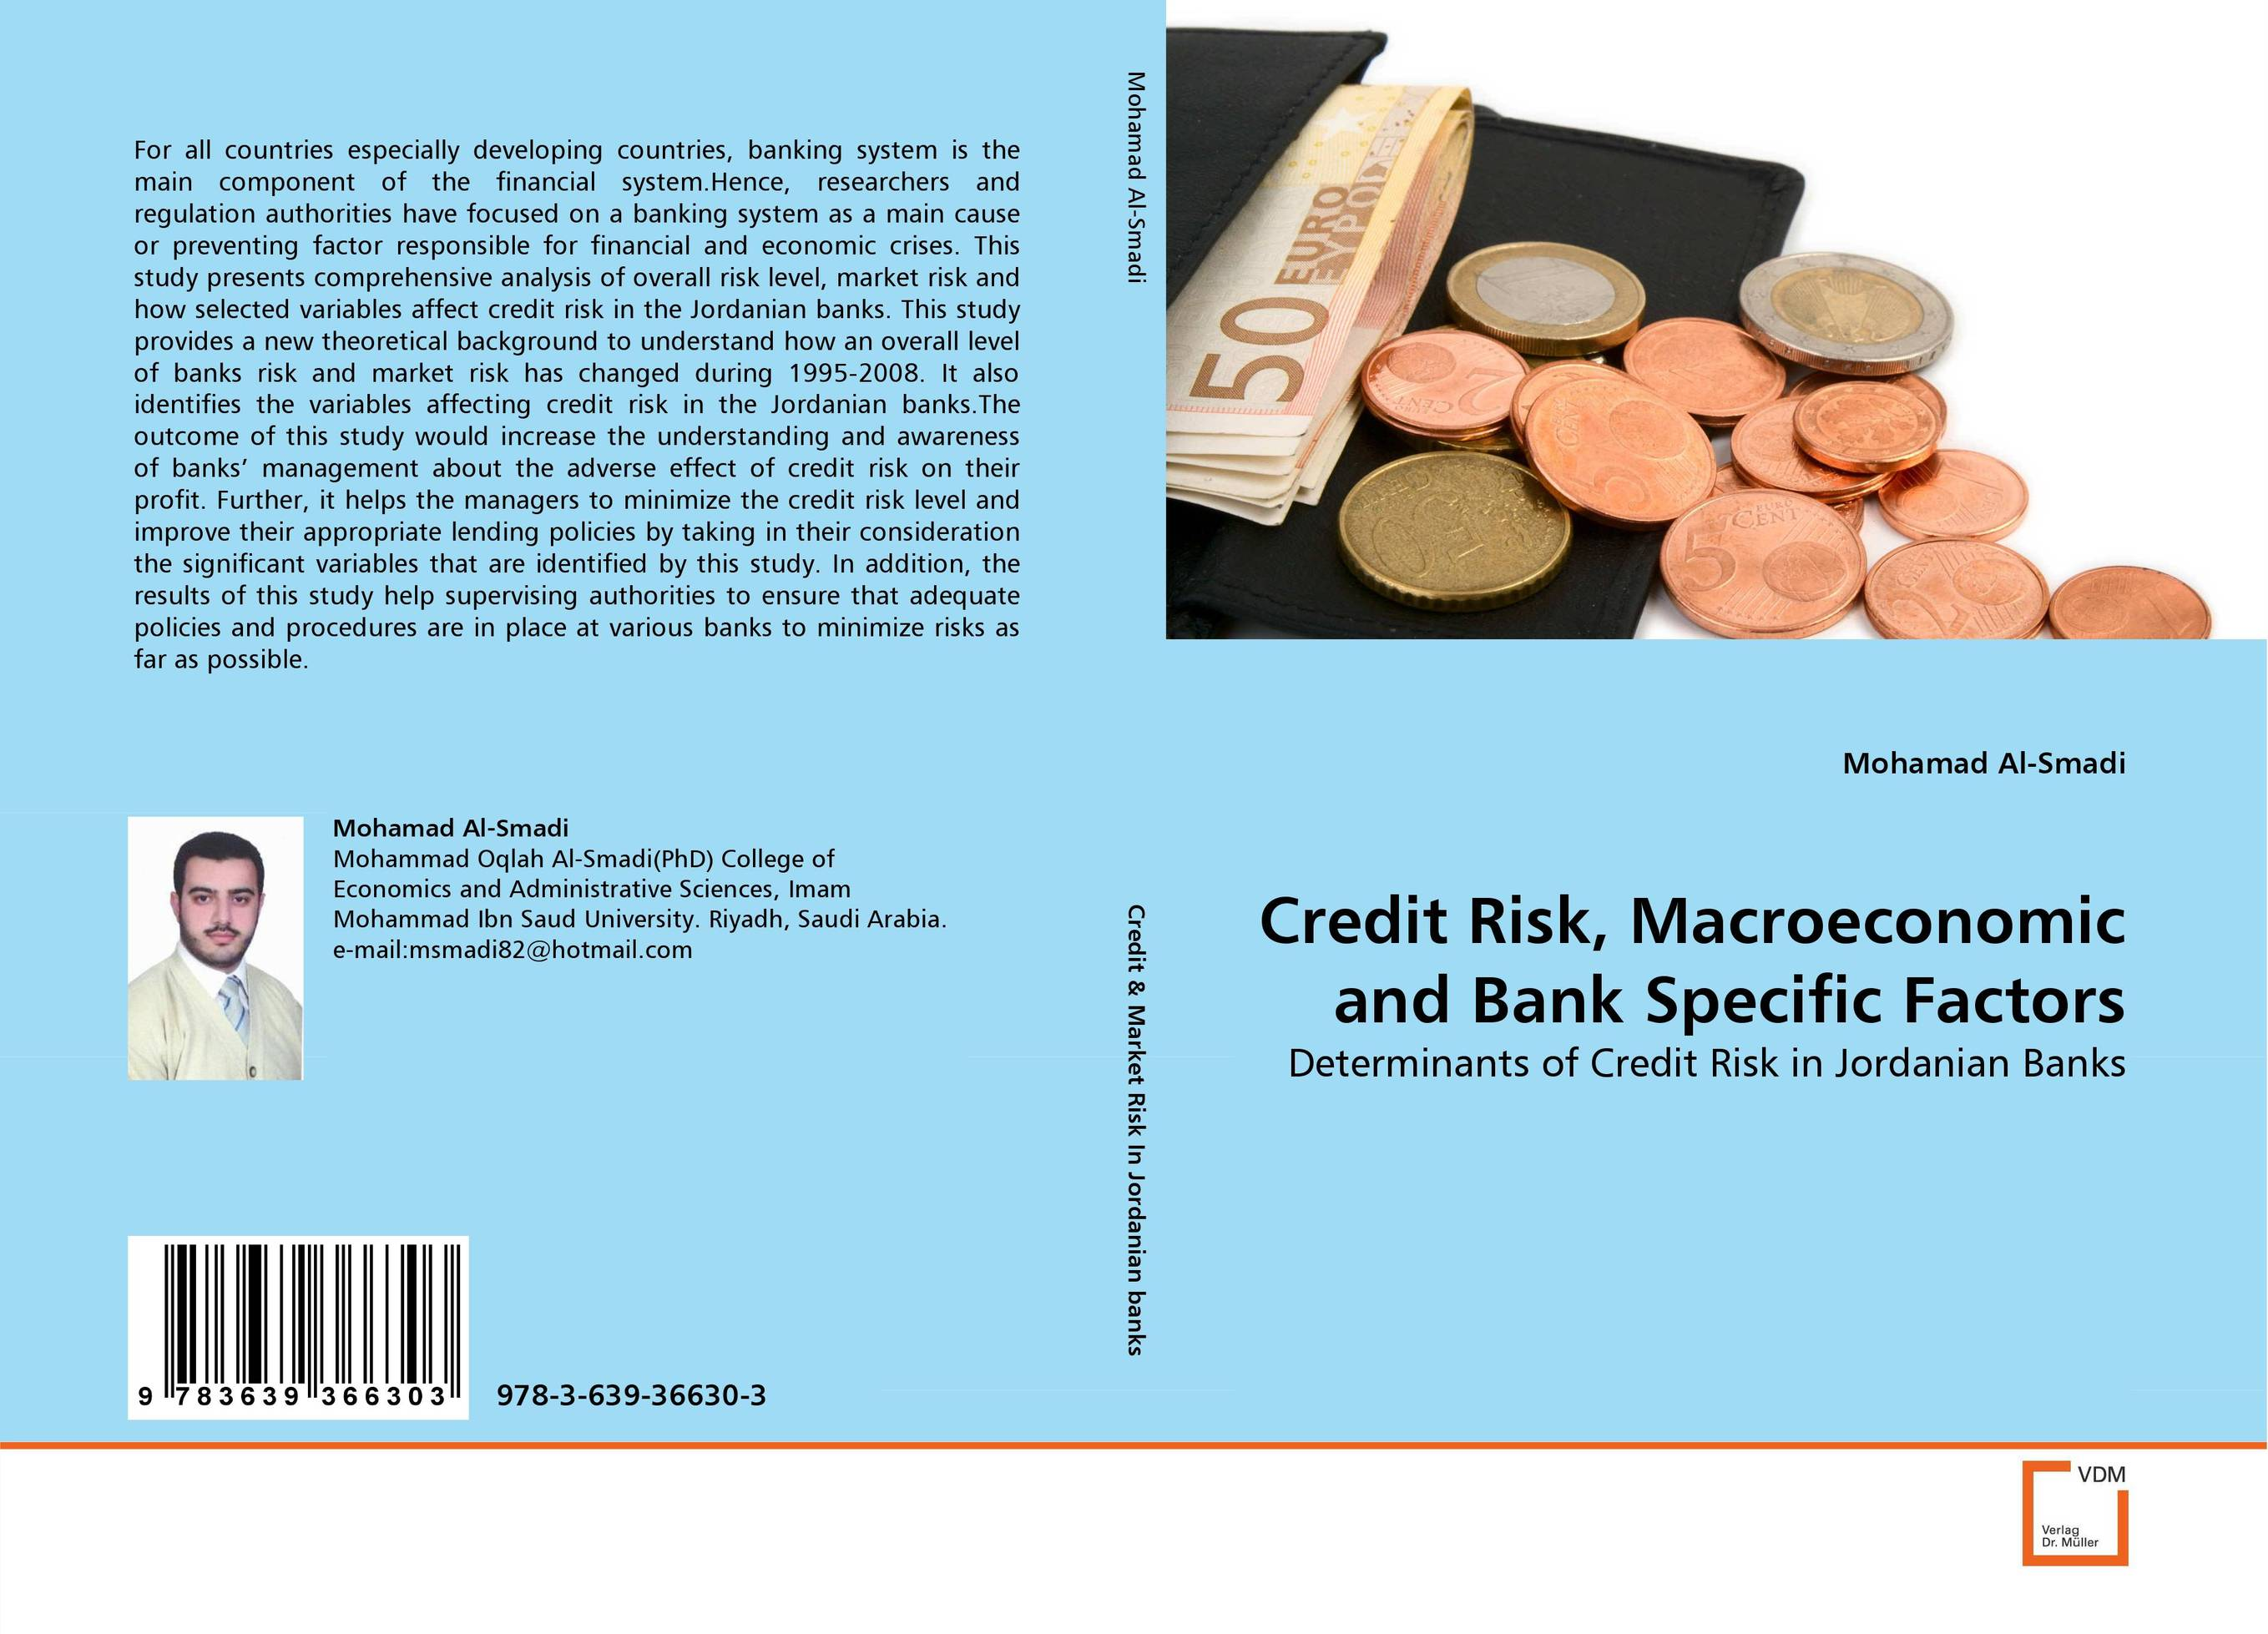 Credit Risk, Macroeconomic and Bank Specific Factors capital structure and risk dynamics among banks